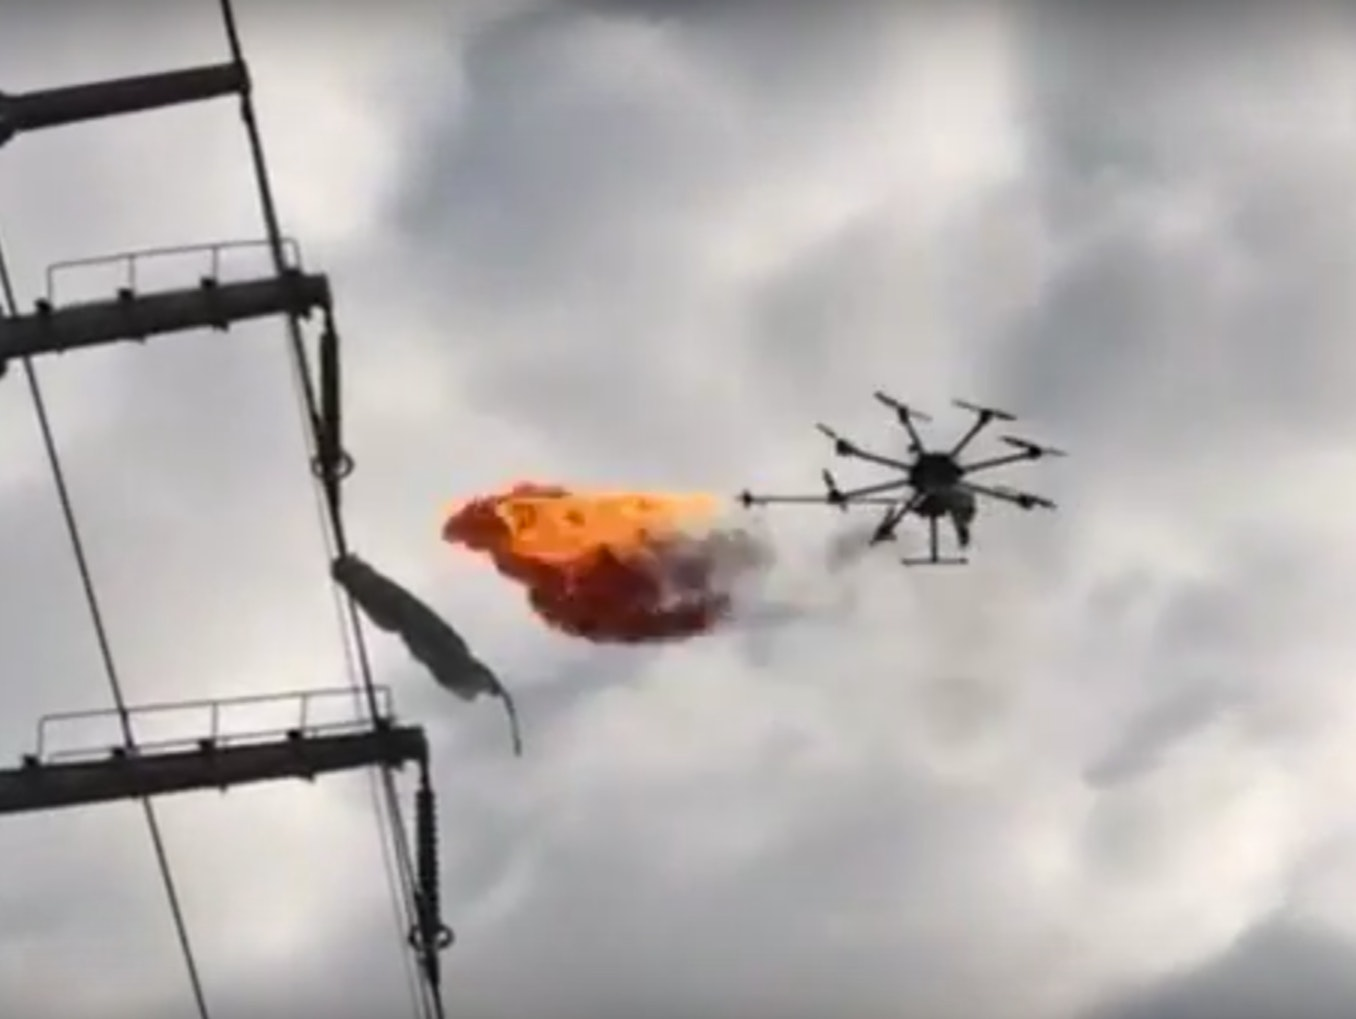 Watch a 1000-Series Drone Use Fire to Burn Trash Off Power Lines